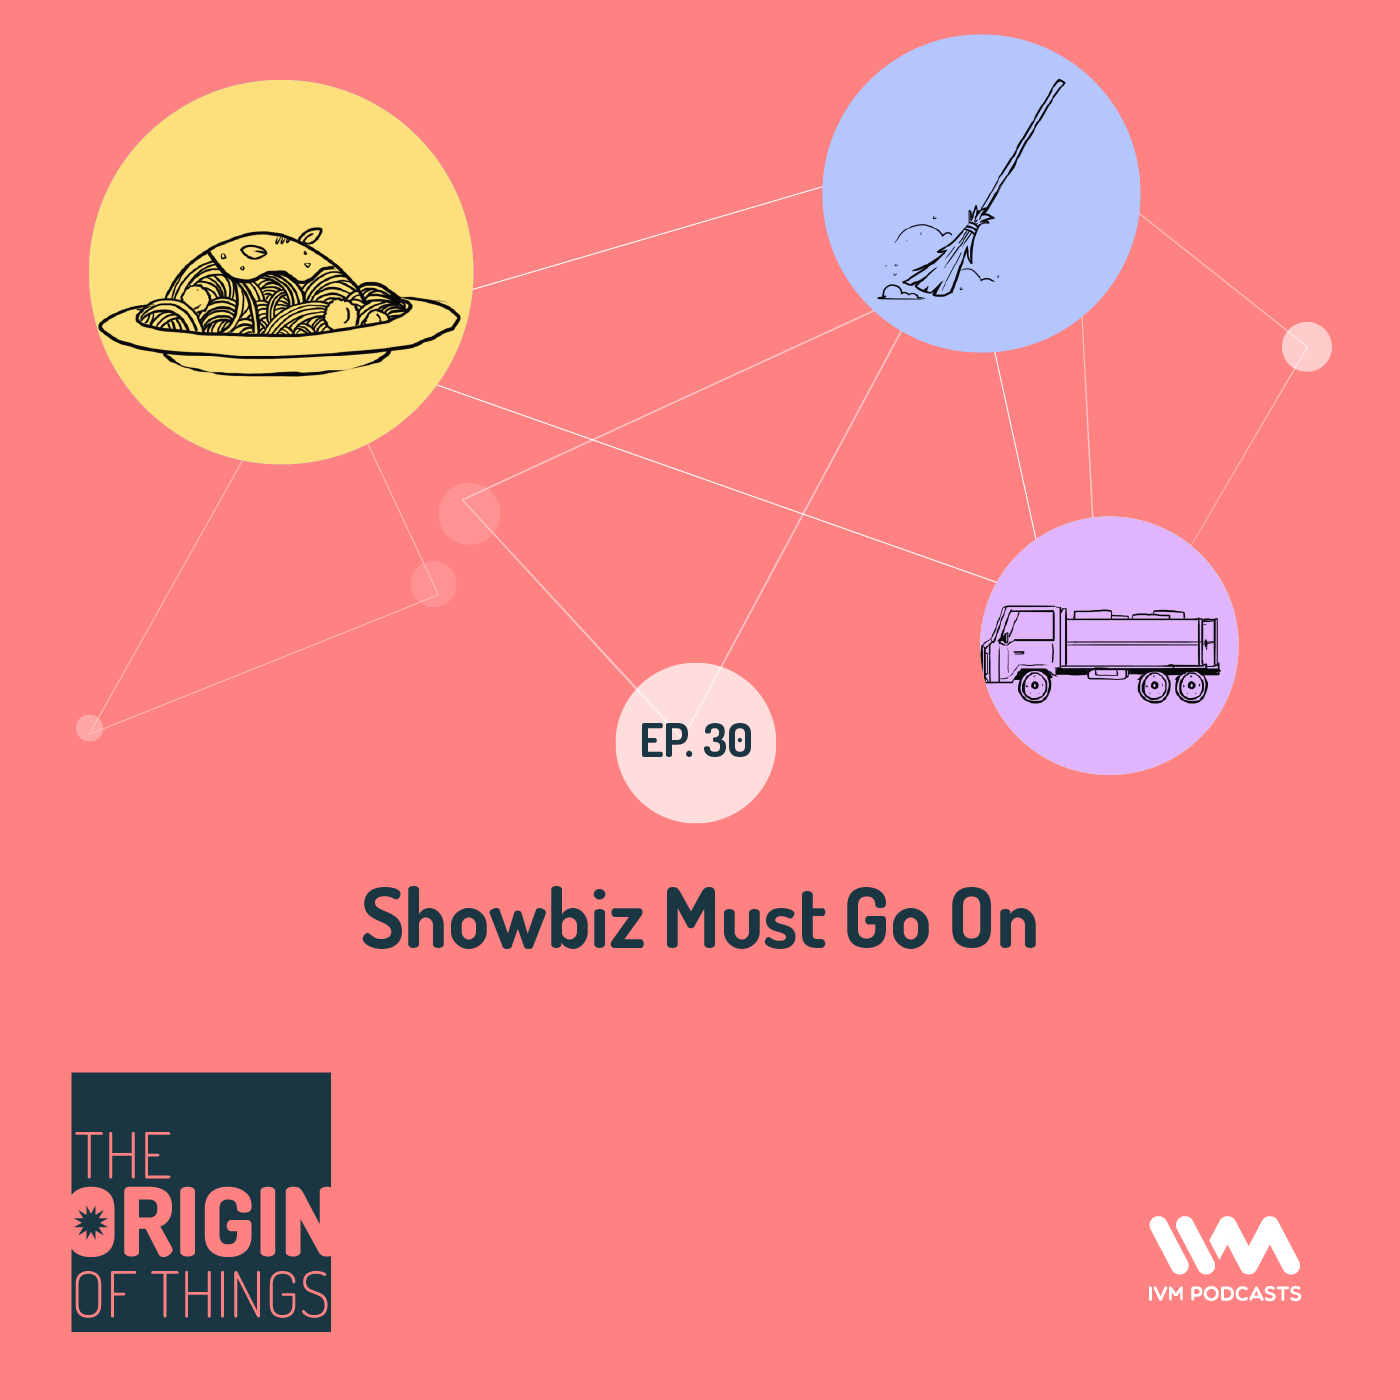 Ep. 30: Showbiz Must Go On